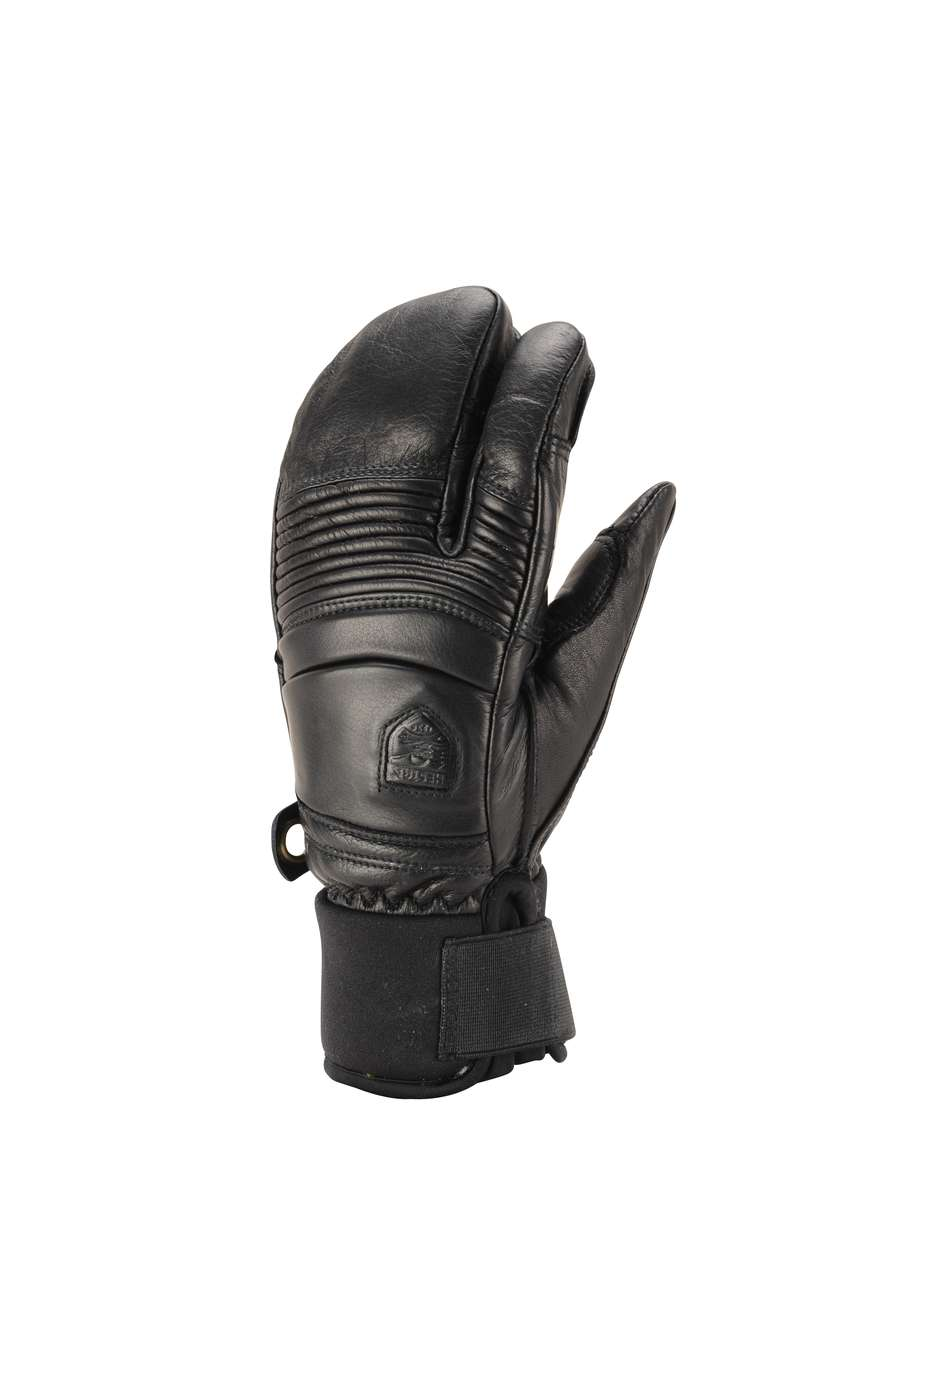 HESTRA GUANTO 31472 Leather Fall Line 3 Finger black - 2016